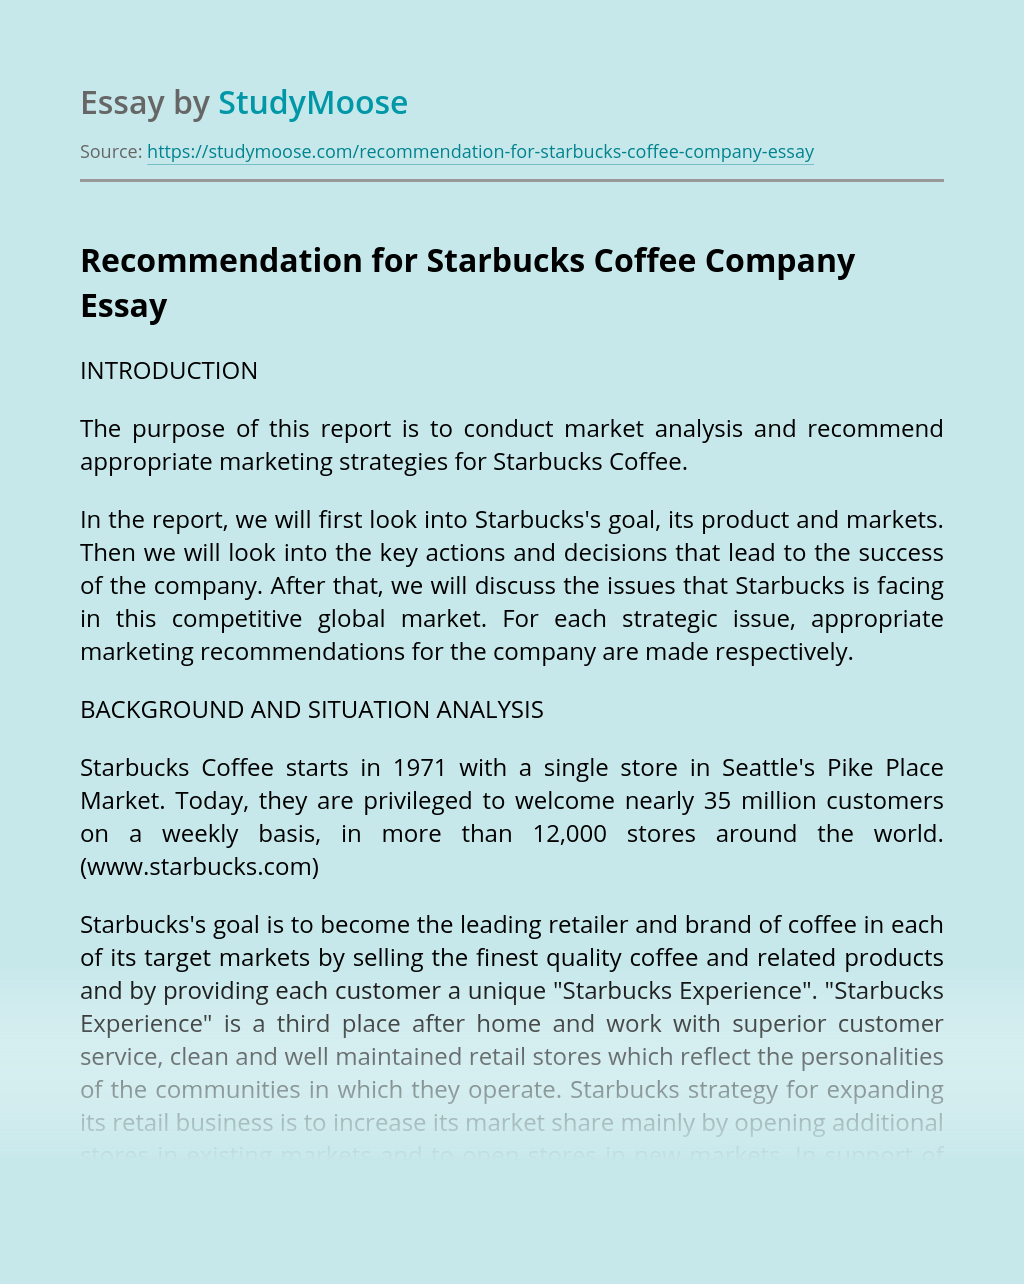 Recommendation for Starbucks Coffee Company